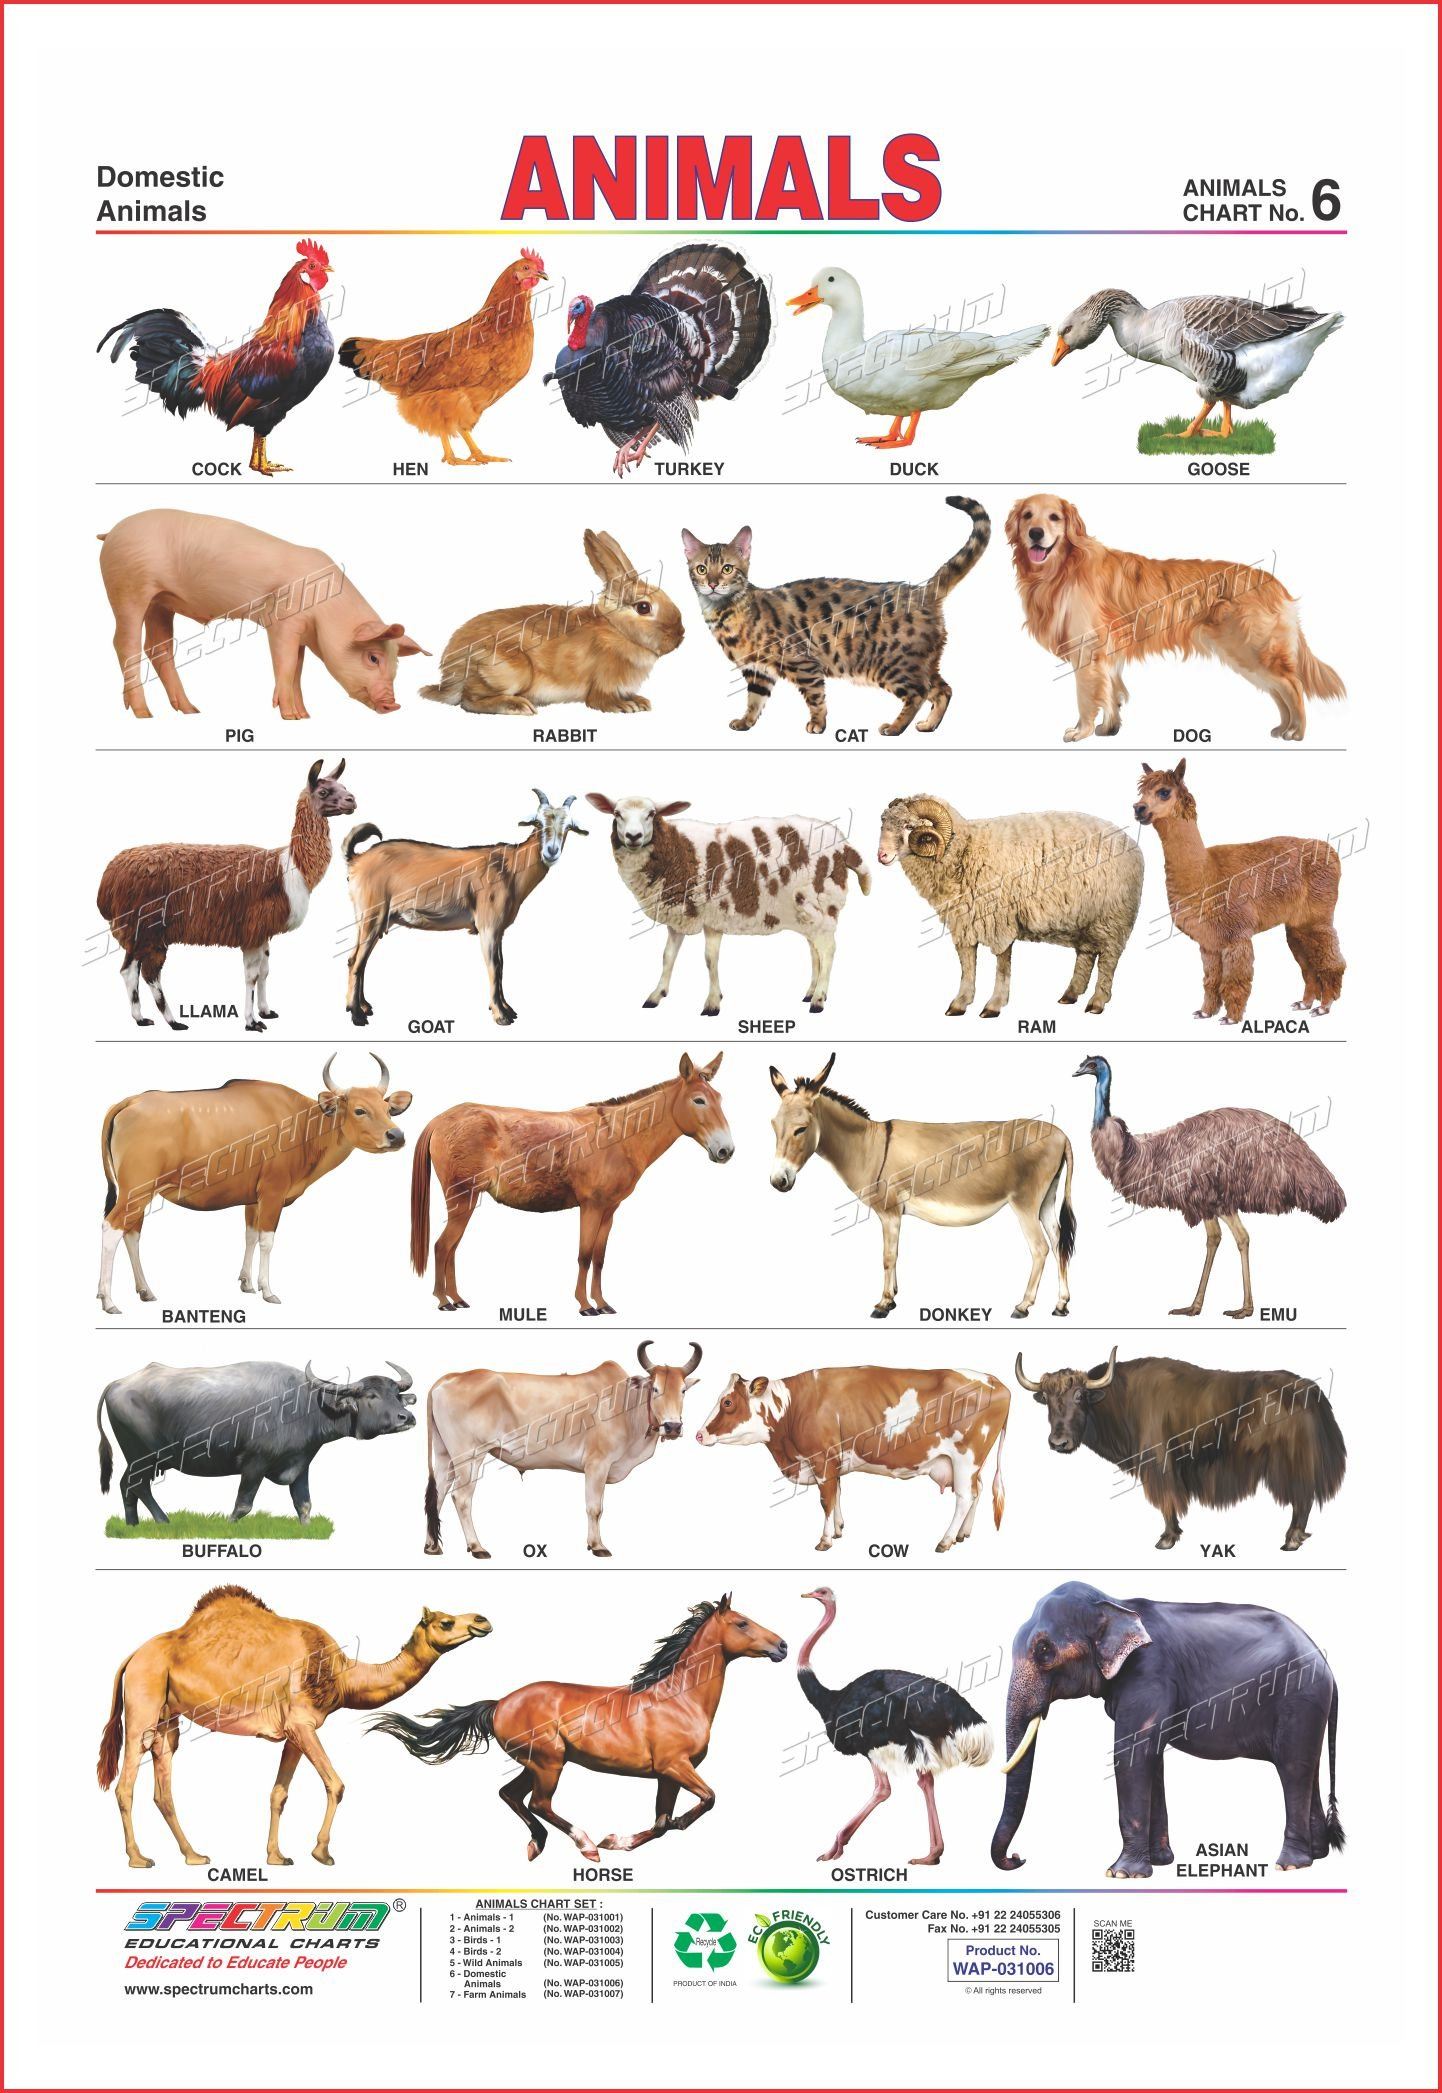 a history of the domestication of wild cattle The domestication of the plant was arguably the single most important technological advance in our history these centers of origin are the places where vavilov suggested the currently cultivated crop species were originally domesticated from the wild cattle before crops: the.